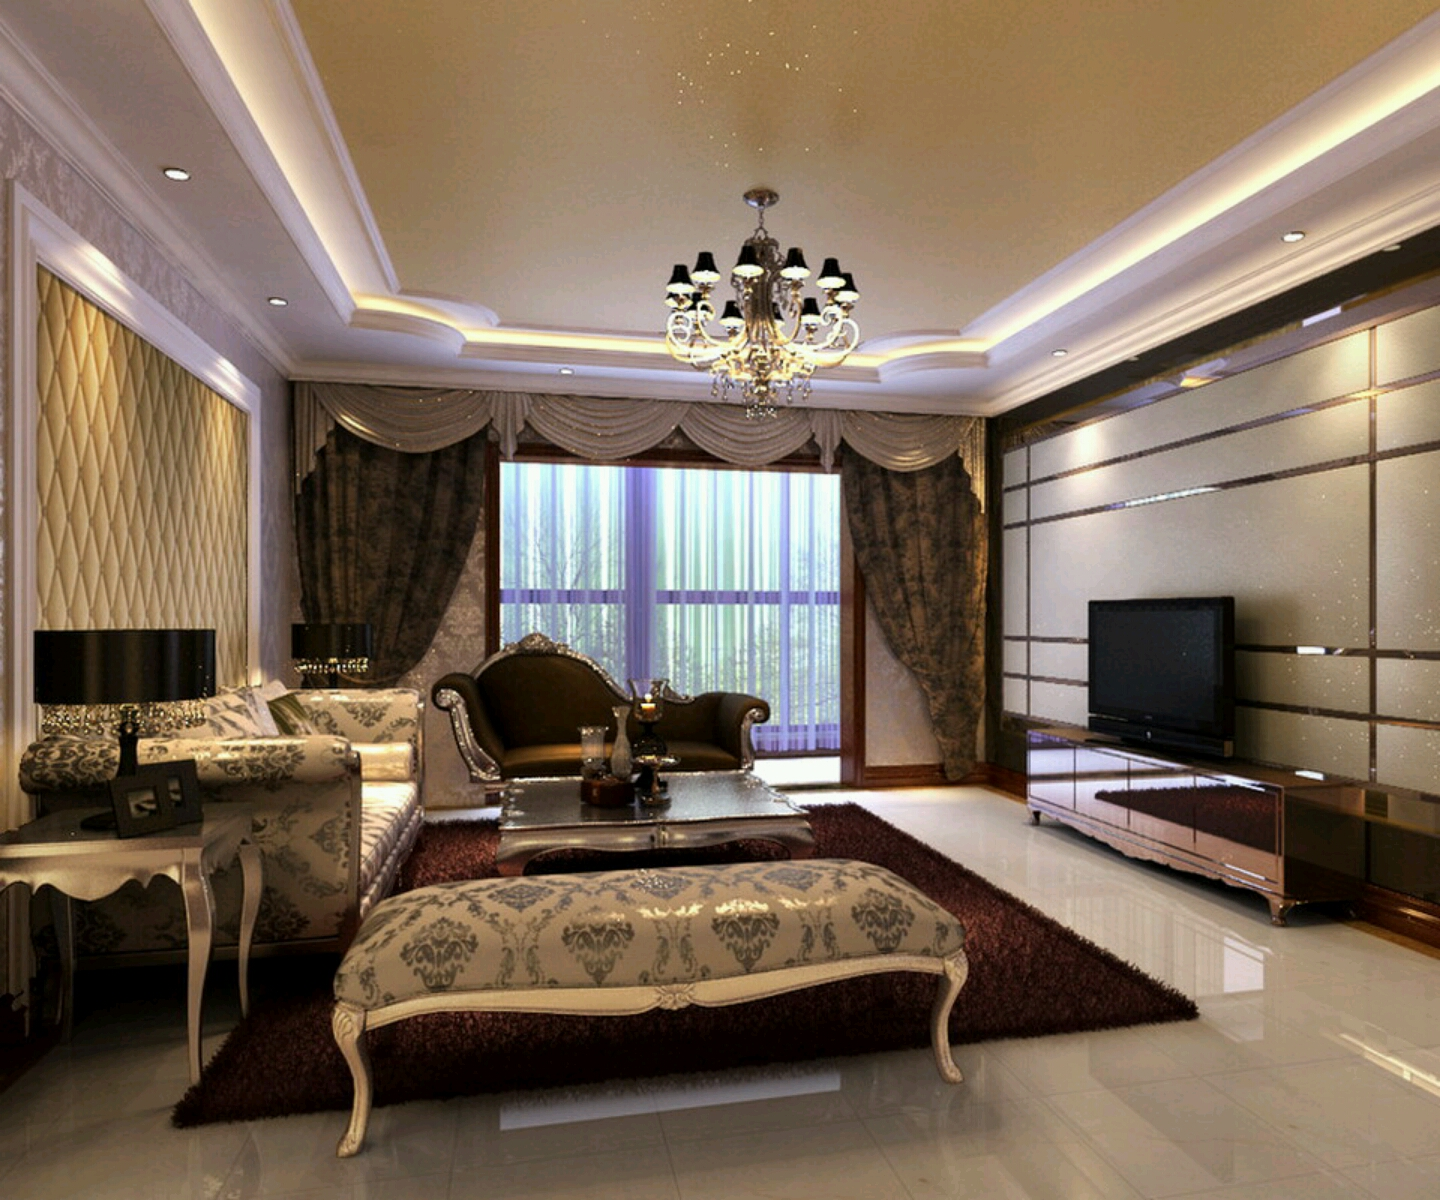 Interior decorating ideas living rooms dream house for Home inner decoration